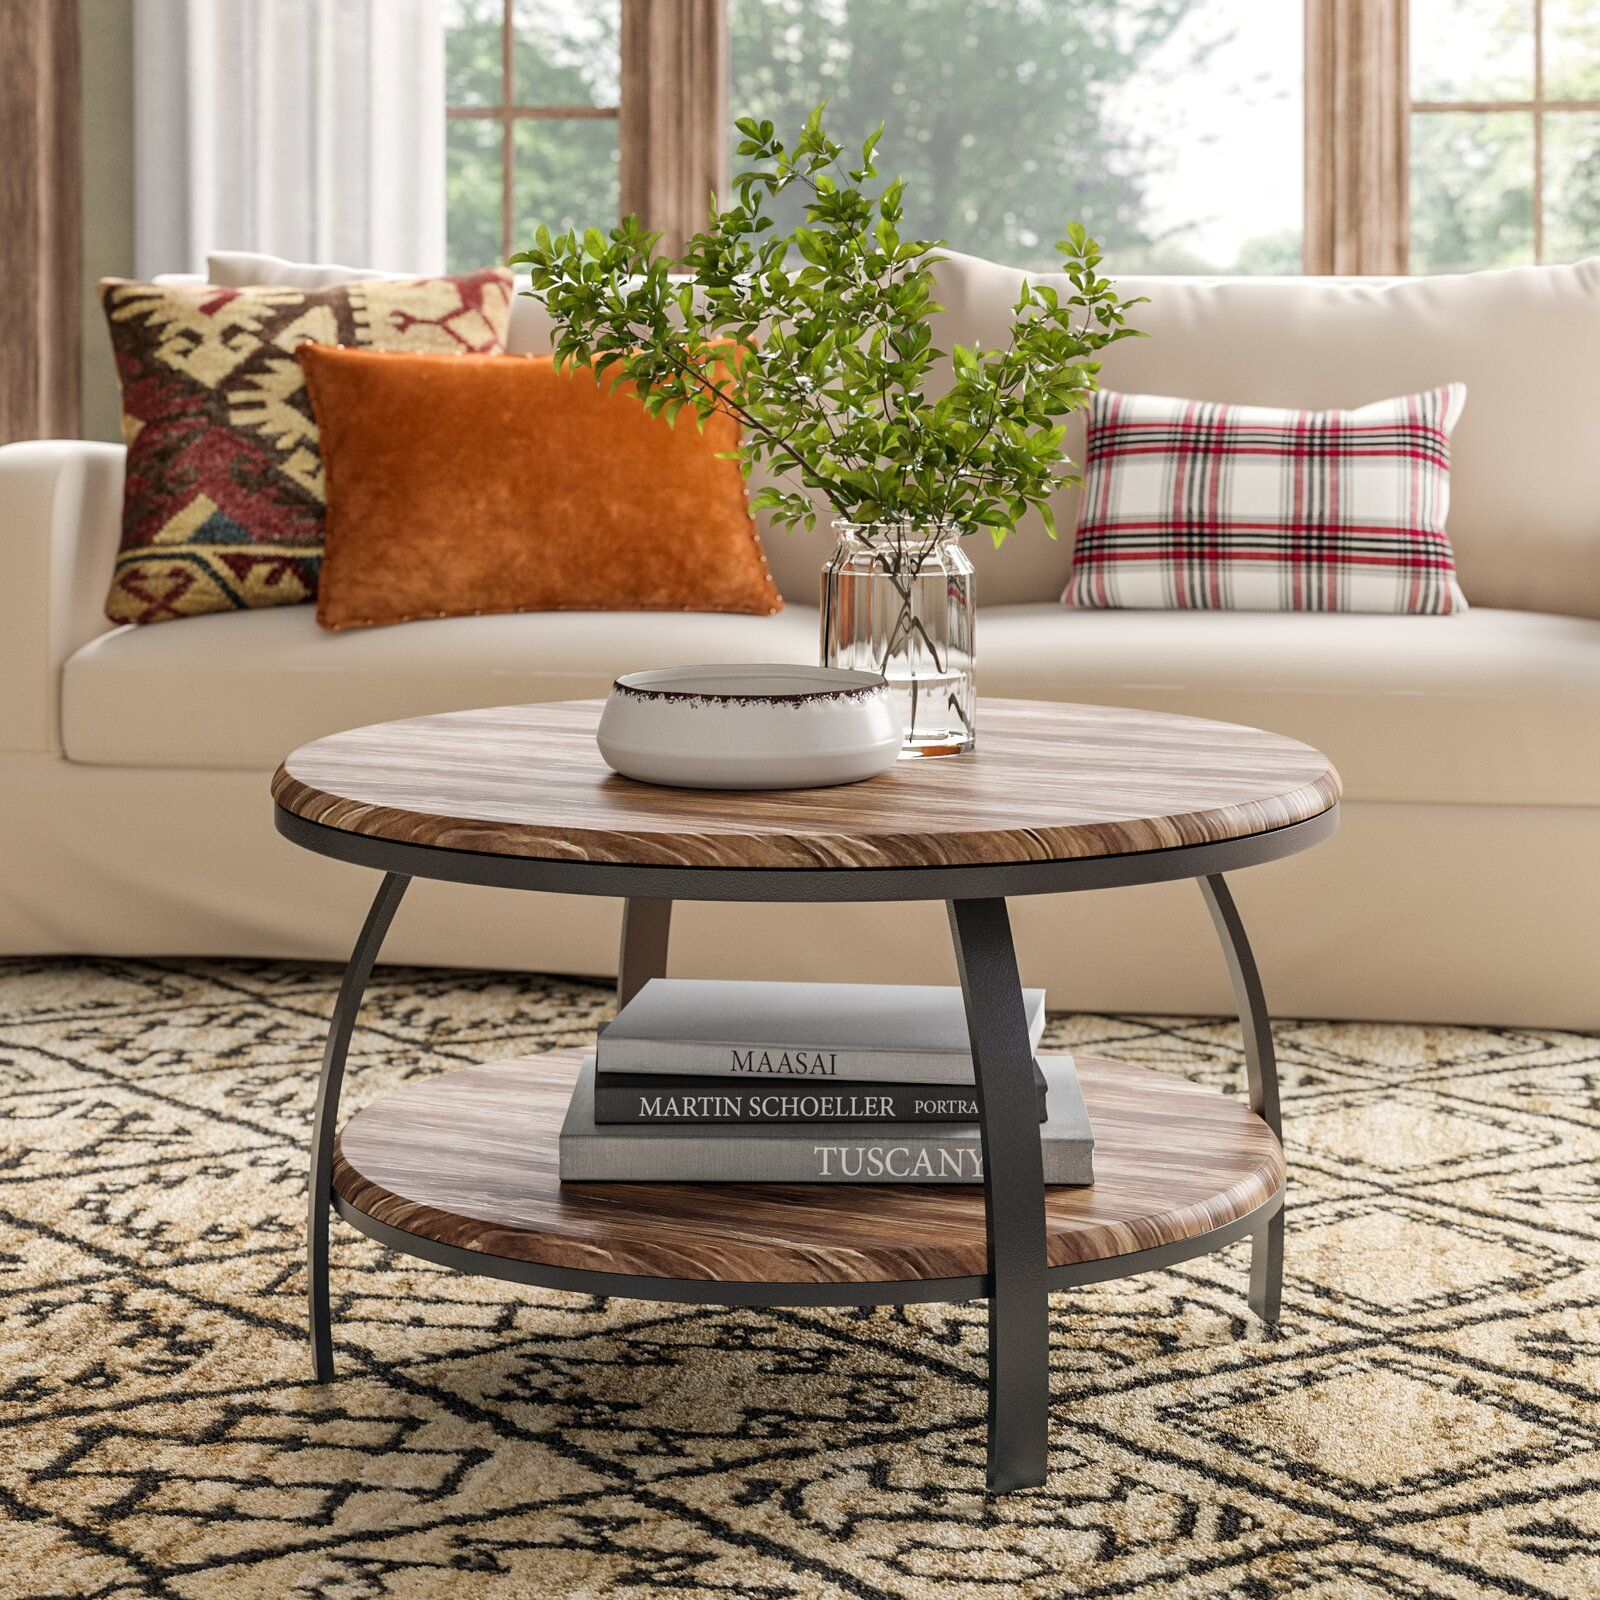 Union Rustic Mccormick Coffee Table With Storage Coffee Table Living Room Coffee Table Round Coffee Table Living Room [ 1600 x 1600 Pixel ]